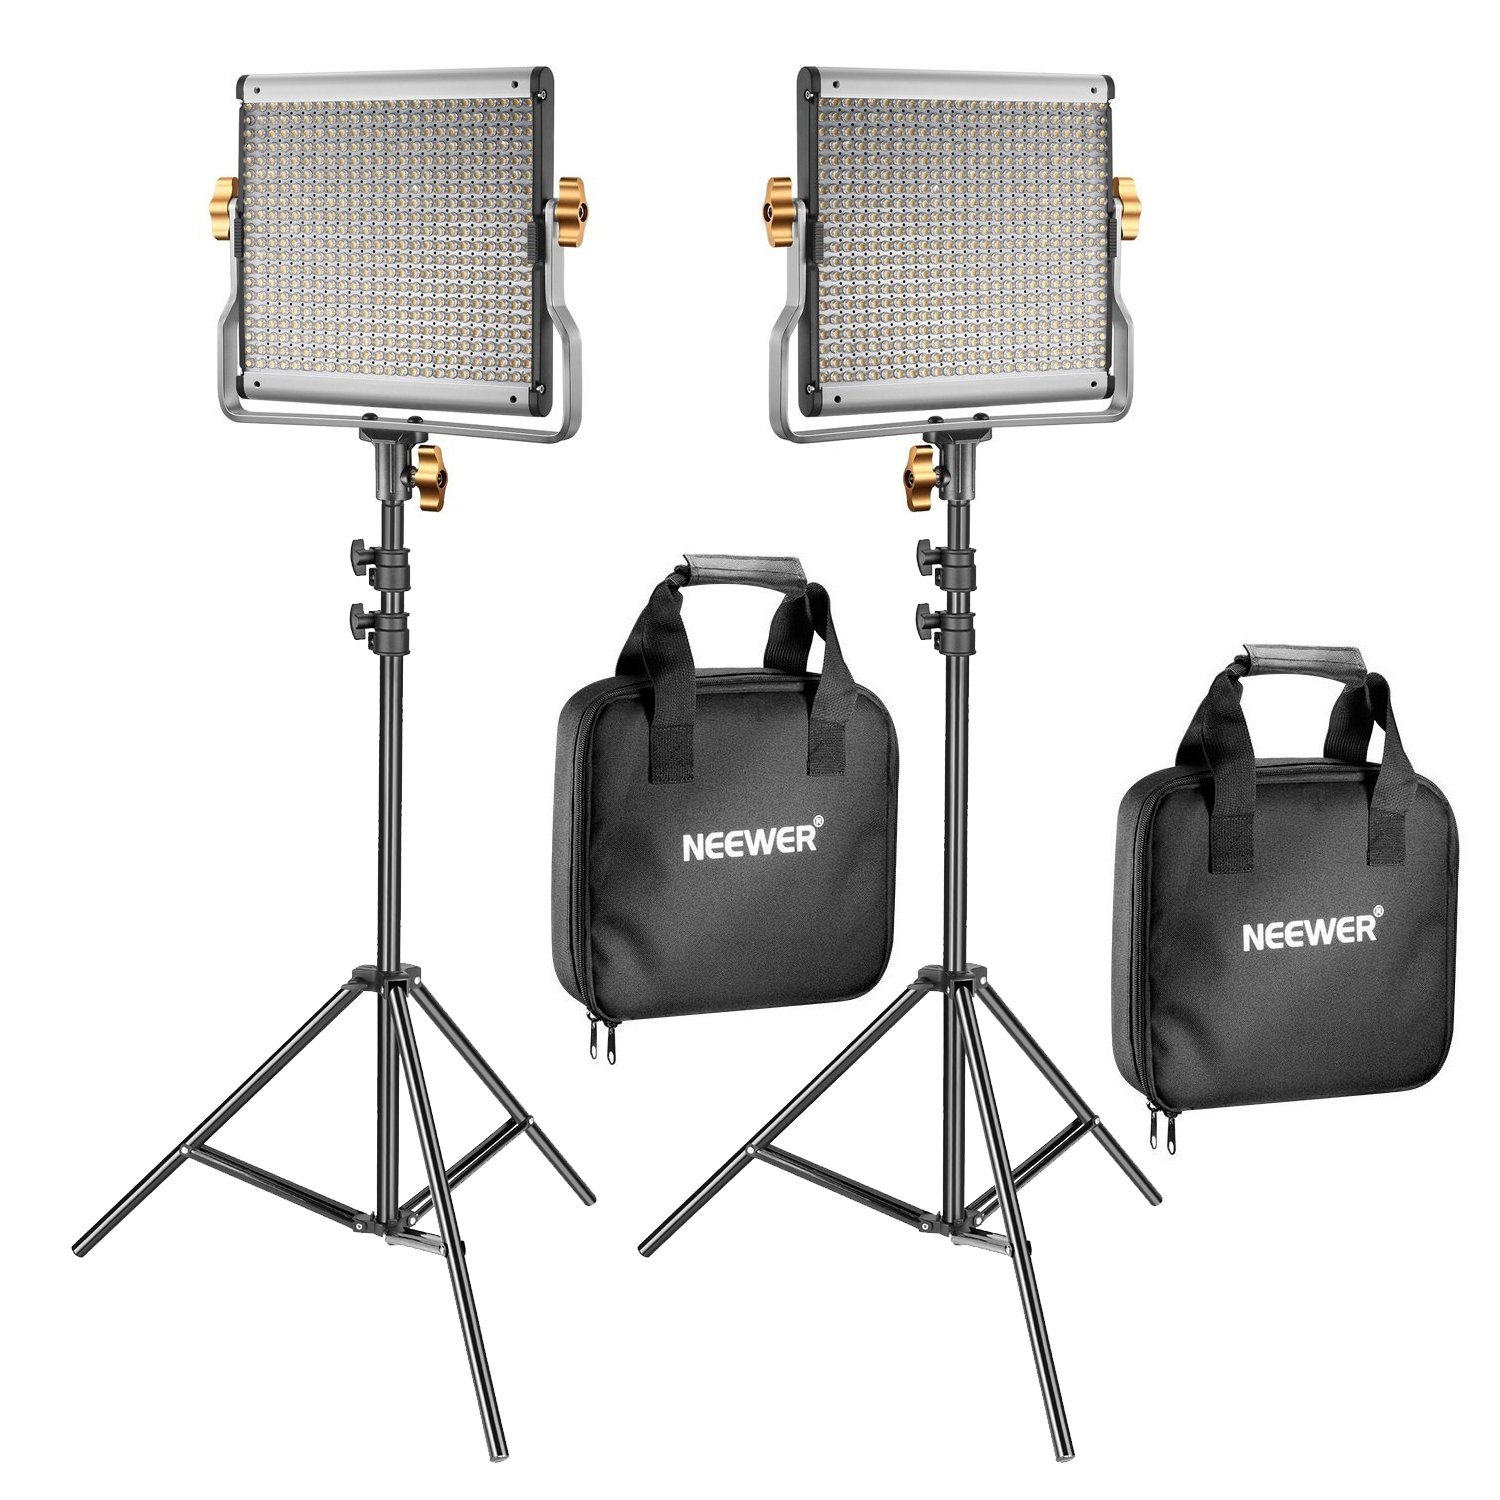 Neewer 2 Pack Dimmable Bi-color 480 LED Video Light and Stand Lighting Kit Includes  sc 1 st  Amazon UK & Amazon.co.uk: Lighting - Photo Studio u0026 Lighting: Electronics ... azcodes.com